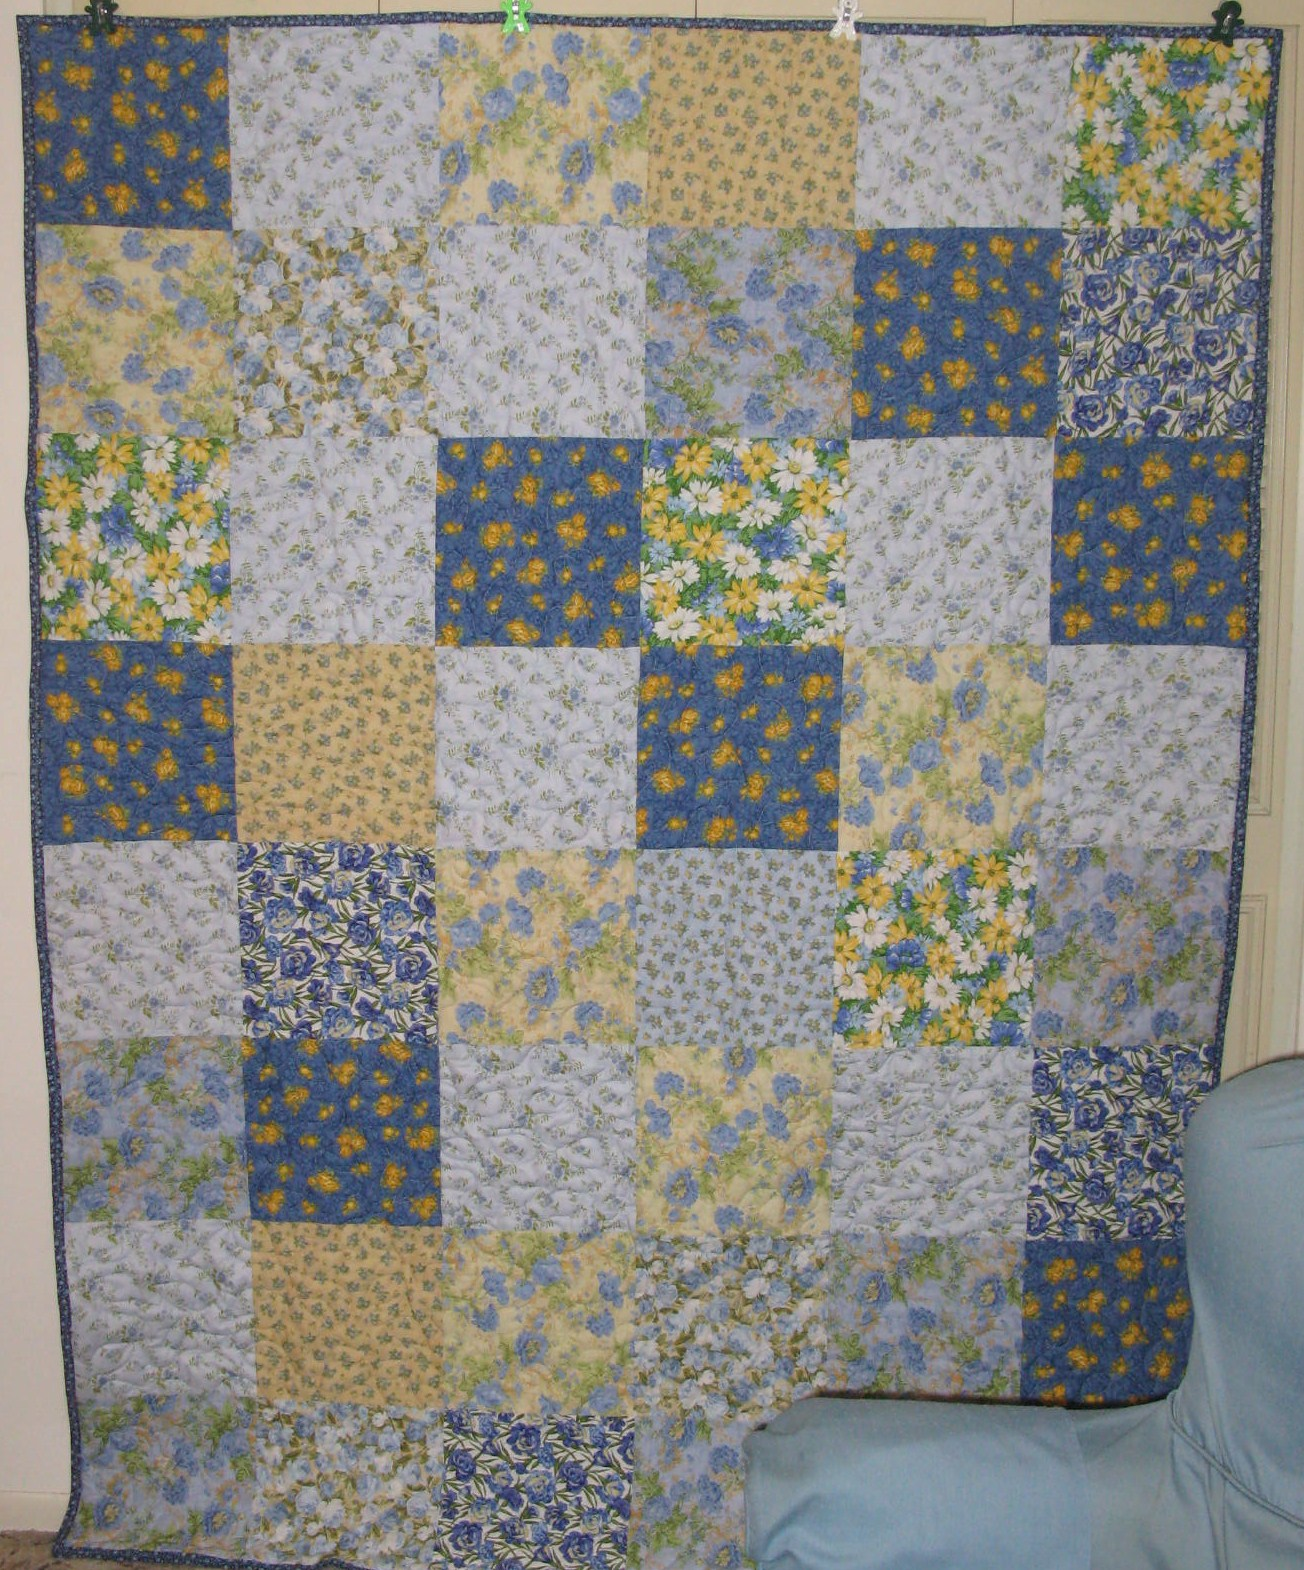 Life is like a patchwork quilt: Blue and Yellow Happiness for a ... : blue and yellow quilt - Adamdwight.com